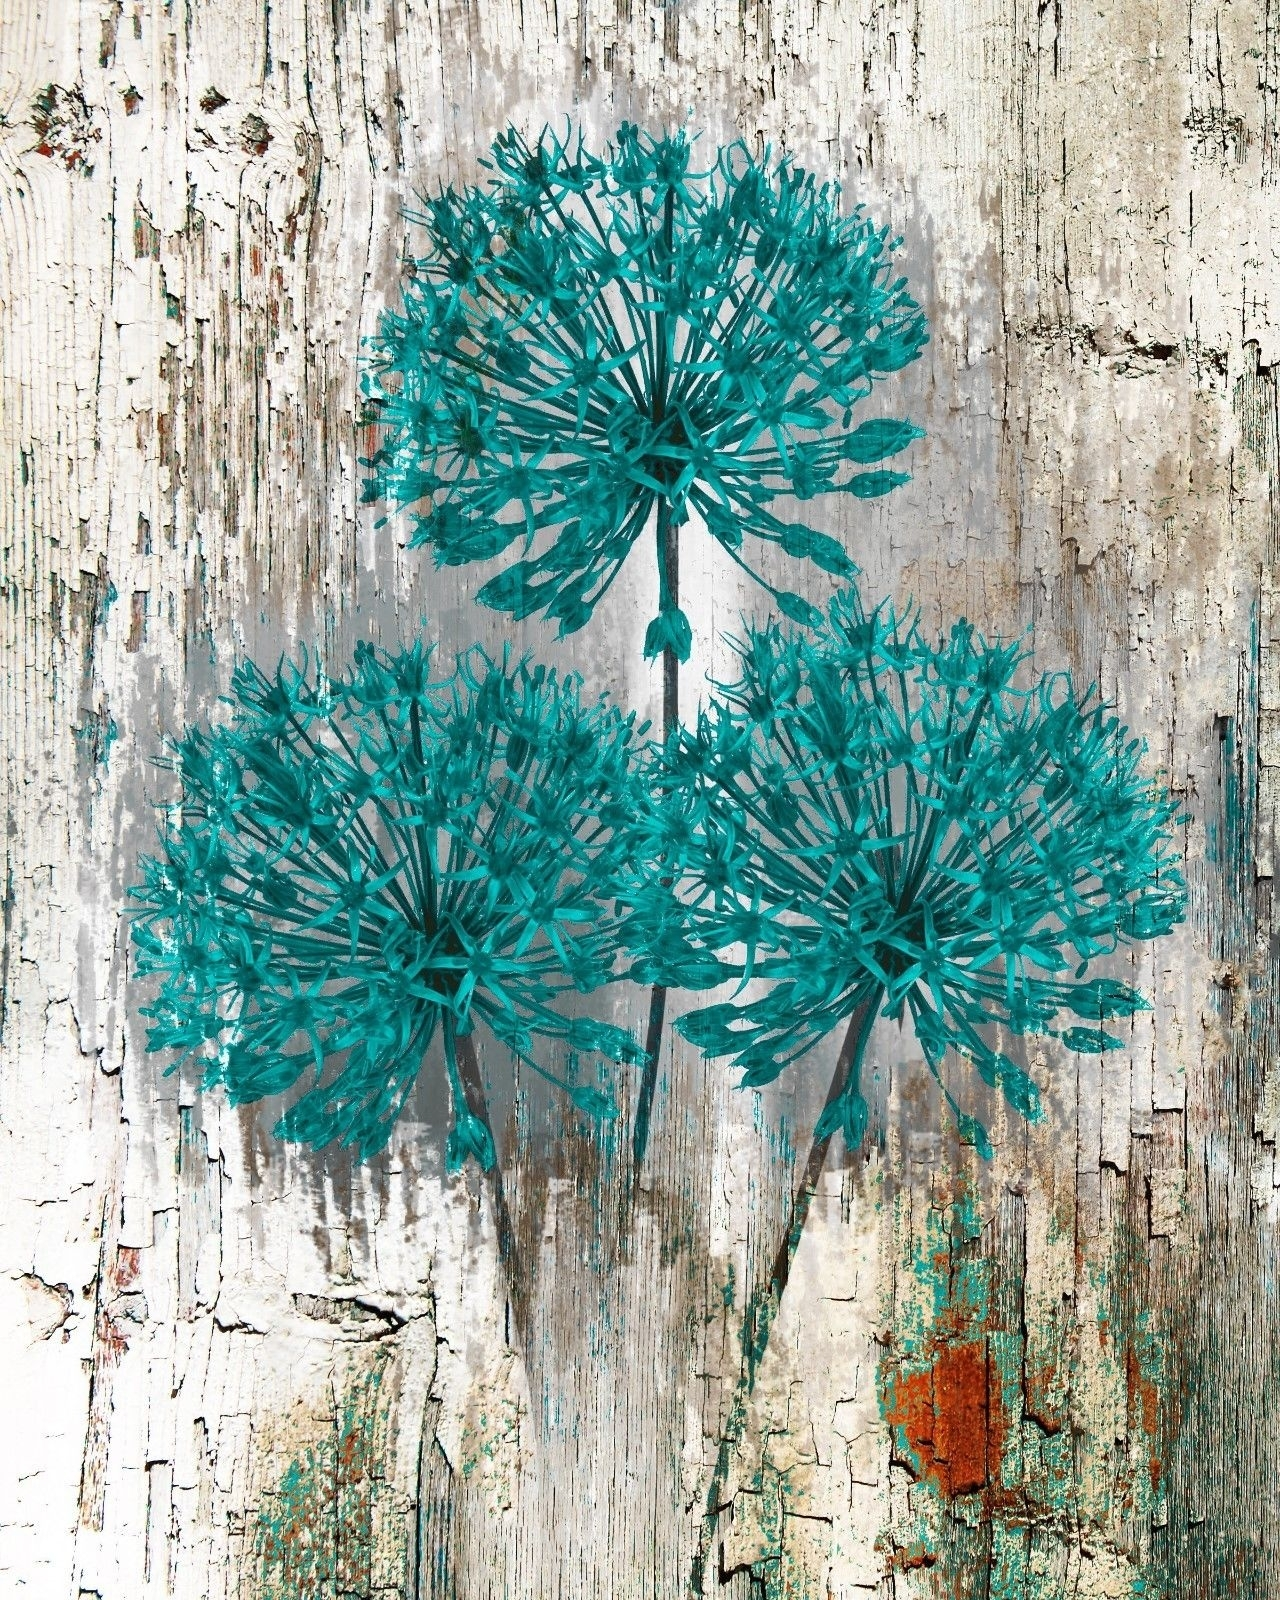 Teal Brown Rustic Distressed Flower Wall Art Home Decor Matted Intended For Newest Teal And Brown Wall Art (View 16 of 20)